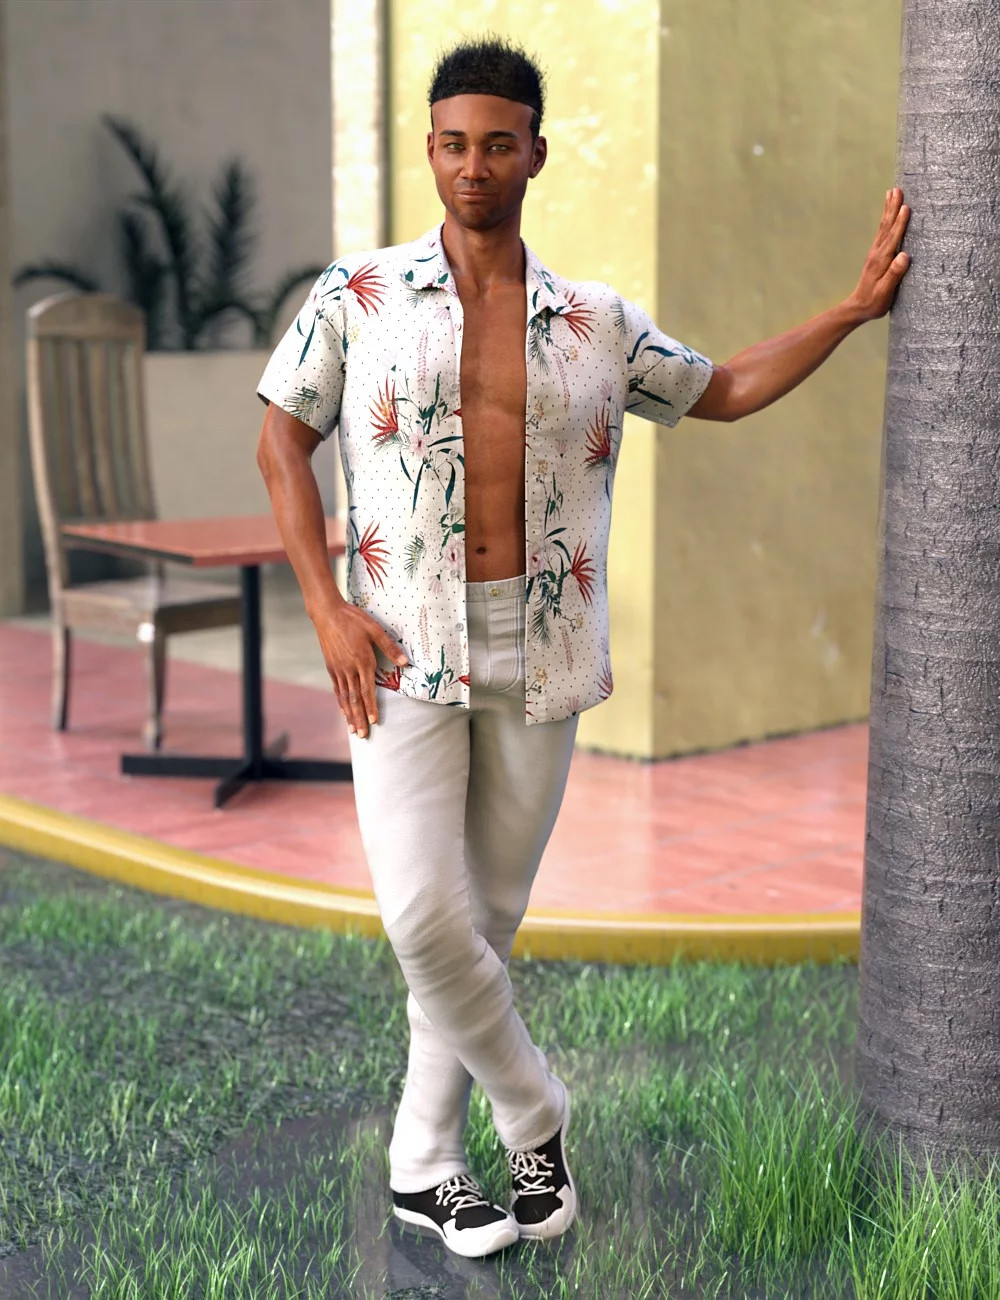 Image shows a man looking relaxed and happy, leaning against a tree and wearing an open Hawaiian-style shirt, white trousers and black and white trainers. The outfit is the Party Oahu Outfit from Daz3D.